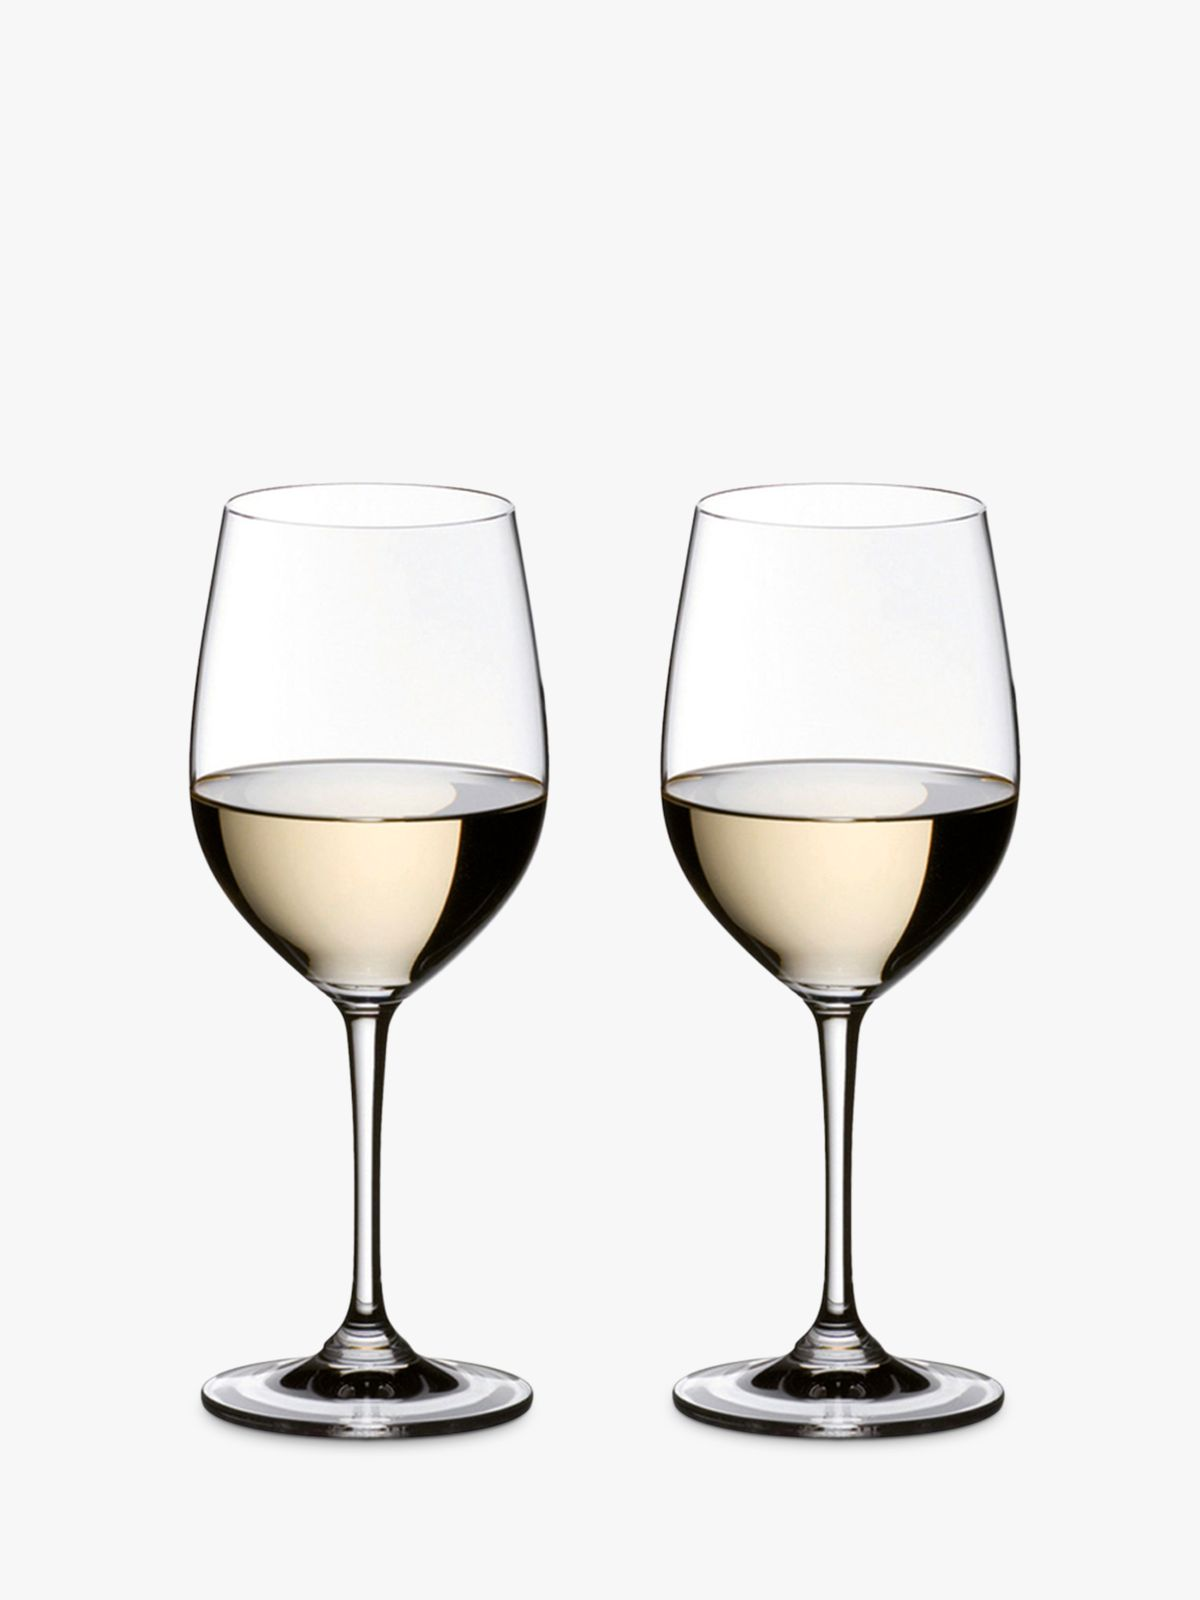 Chardonnay Wine Glass Riedel Vinum Chardonnay White Wine Glasses Set Of 2